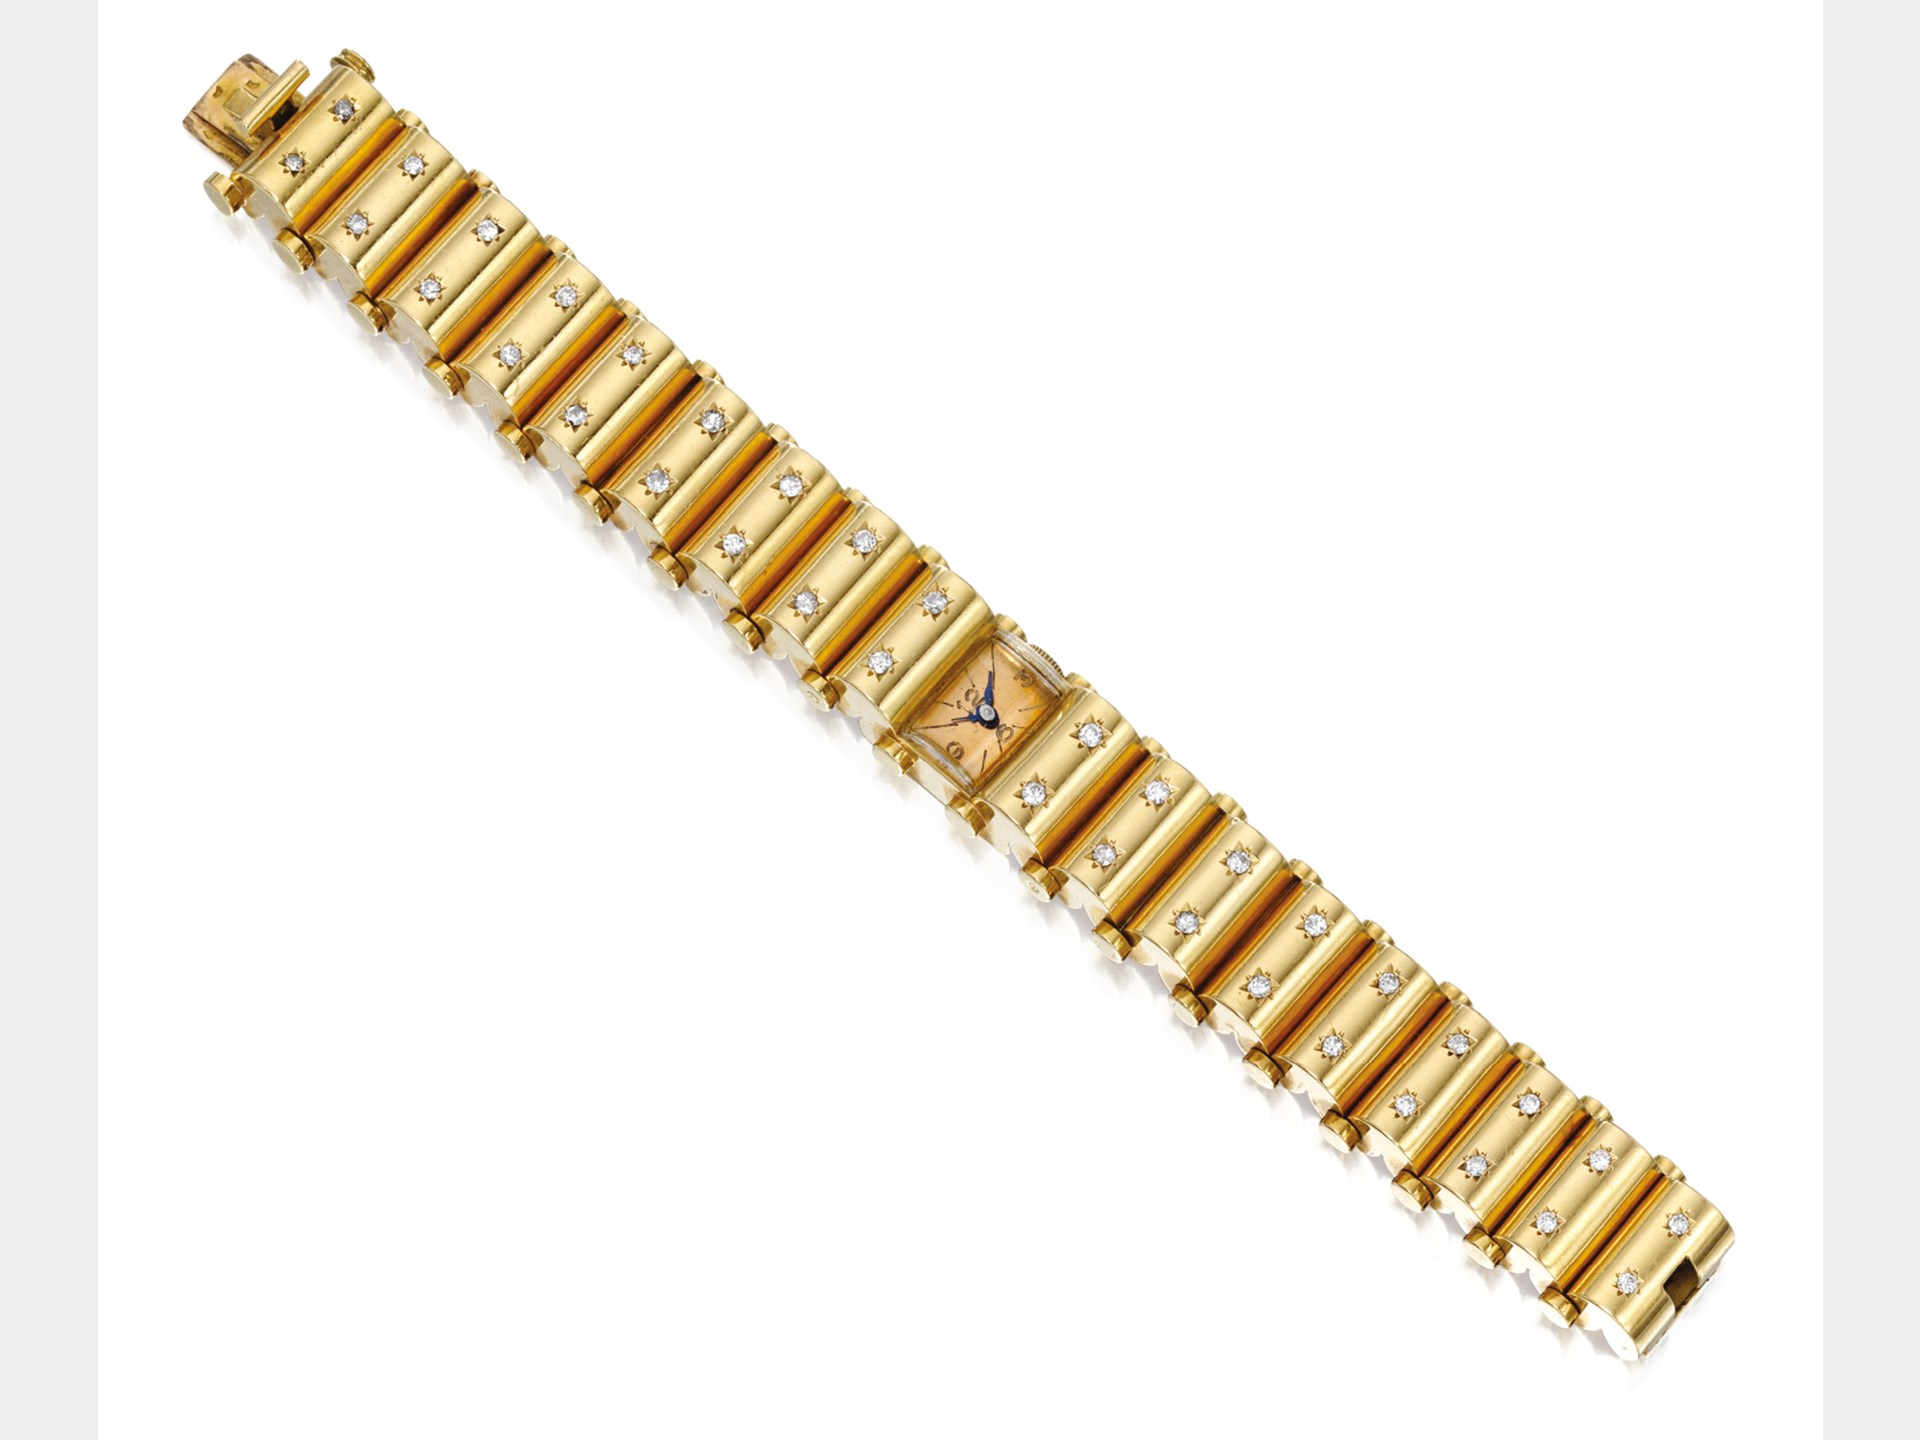 Van Cleef & Arpels, Gold and Diamond Wristwatch